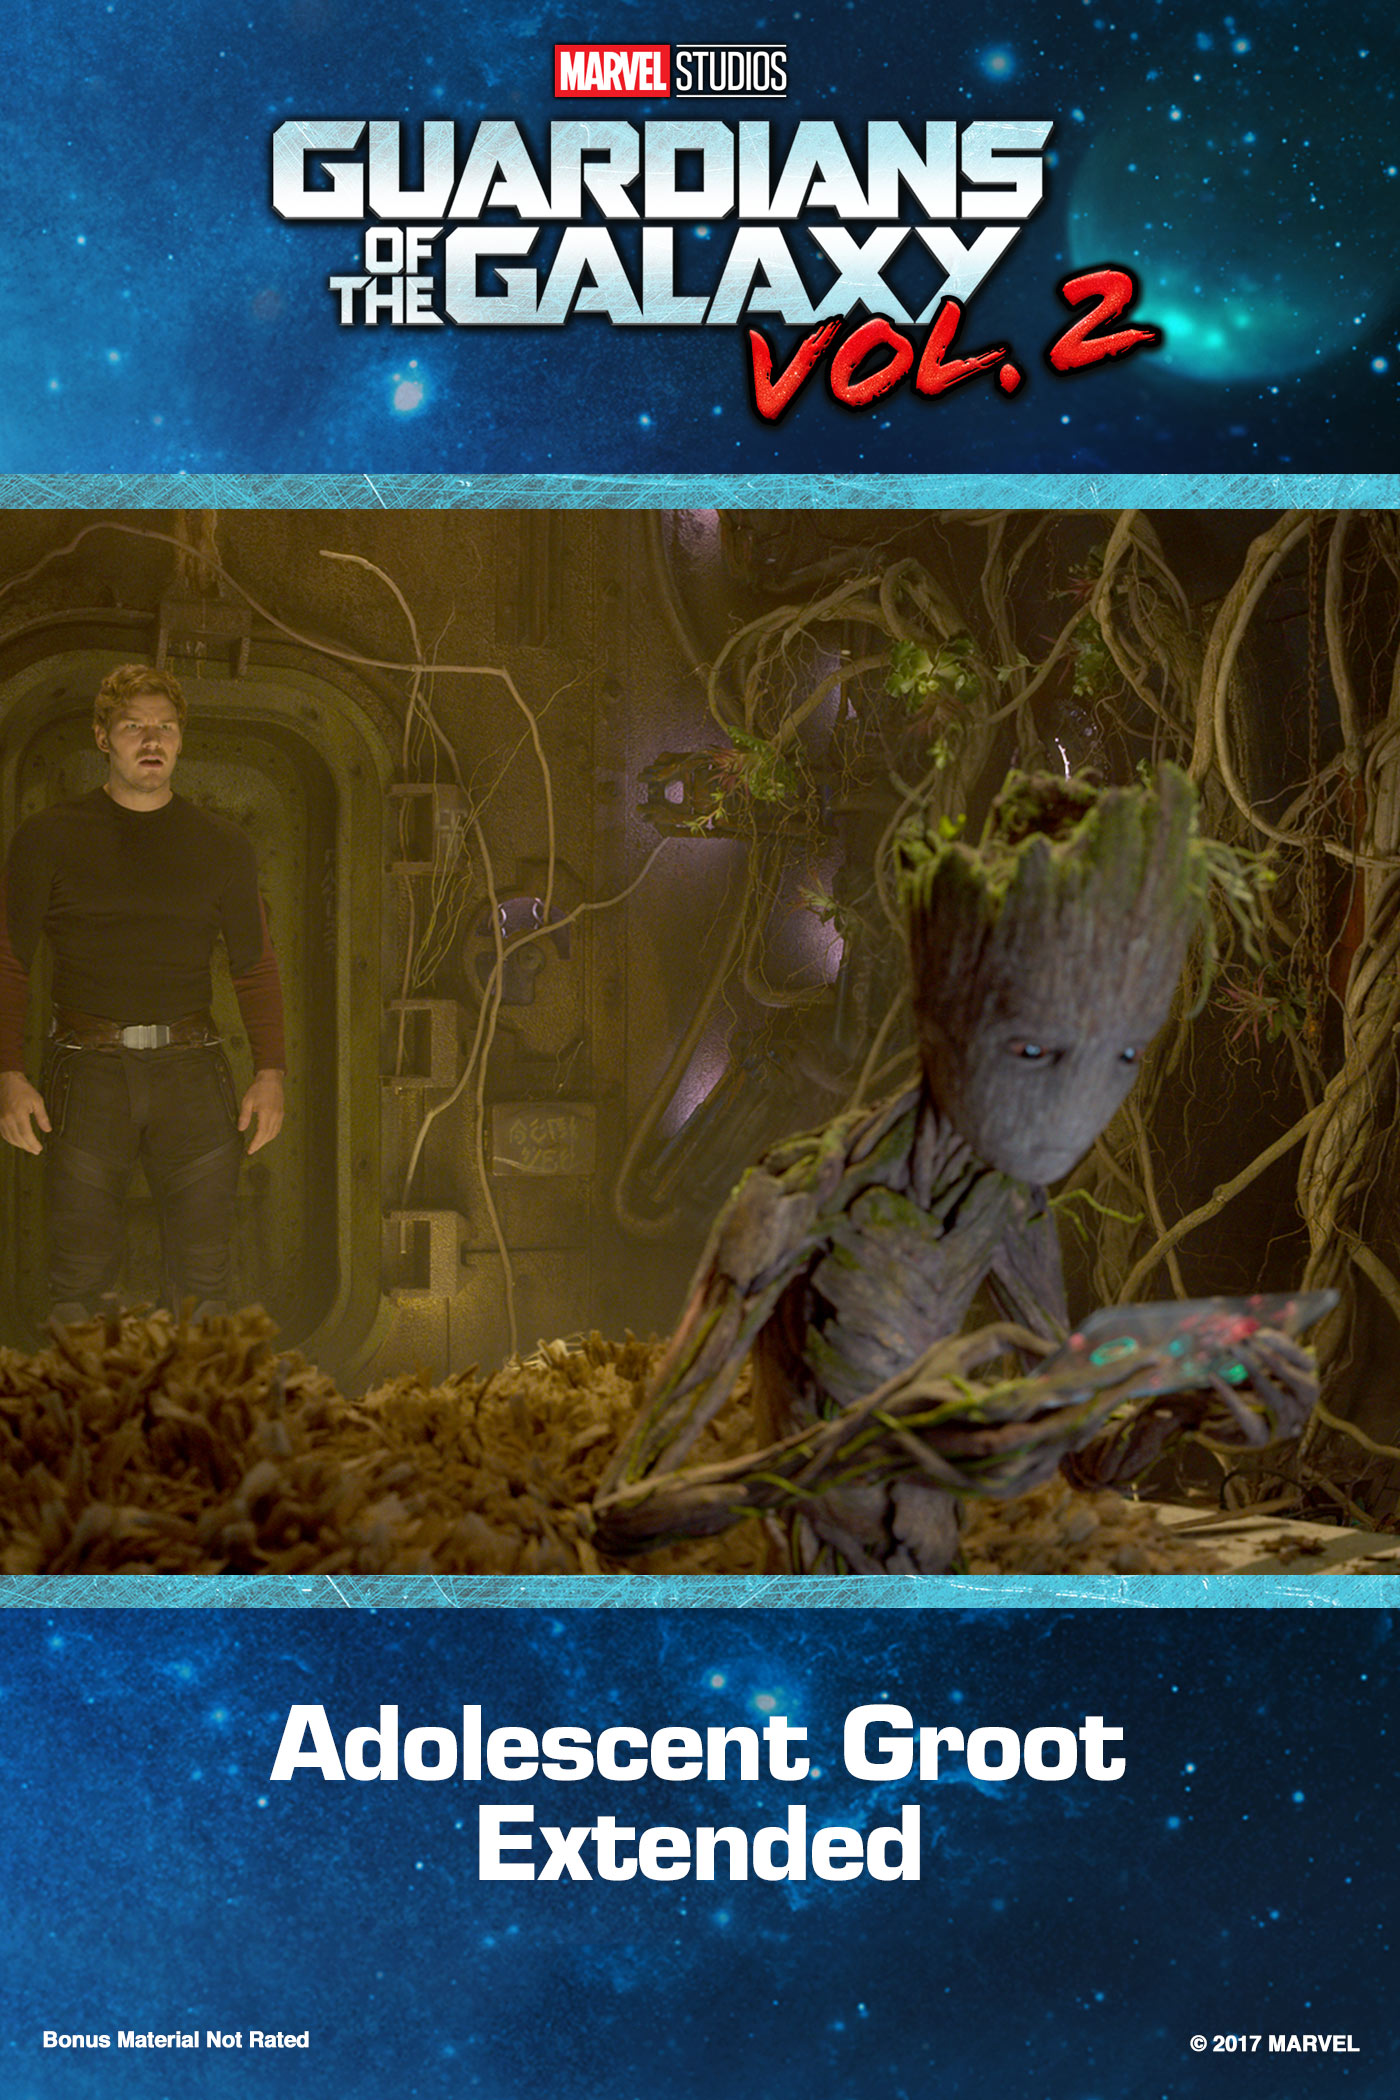 Adolescent Groot Extended